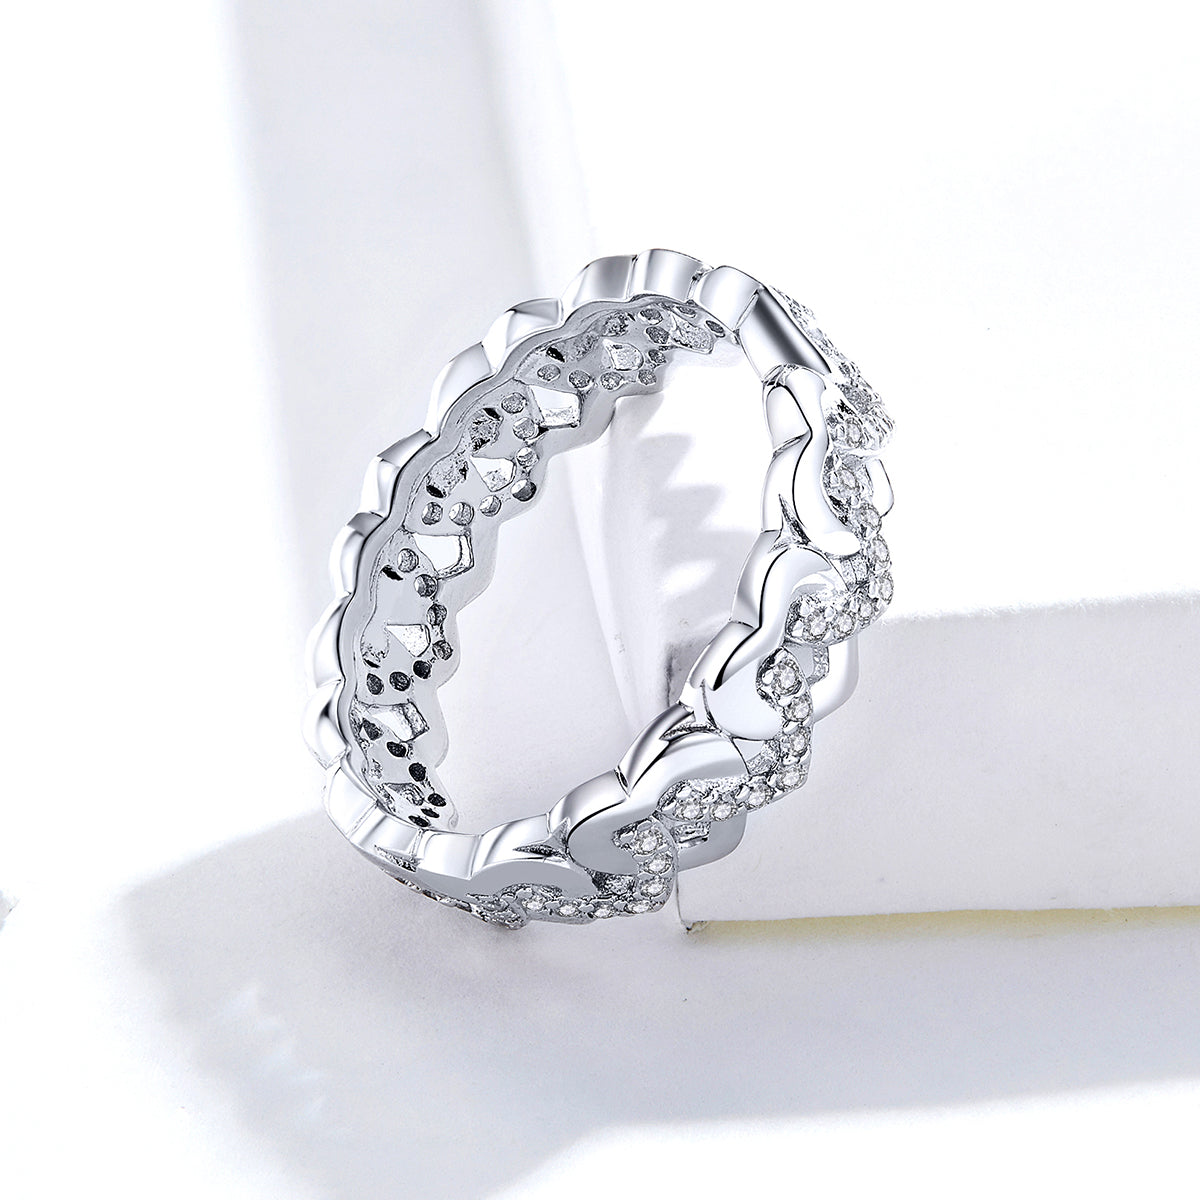 S925 Sterling Silver Beloved Ring White Gold Plated Zircon Ring